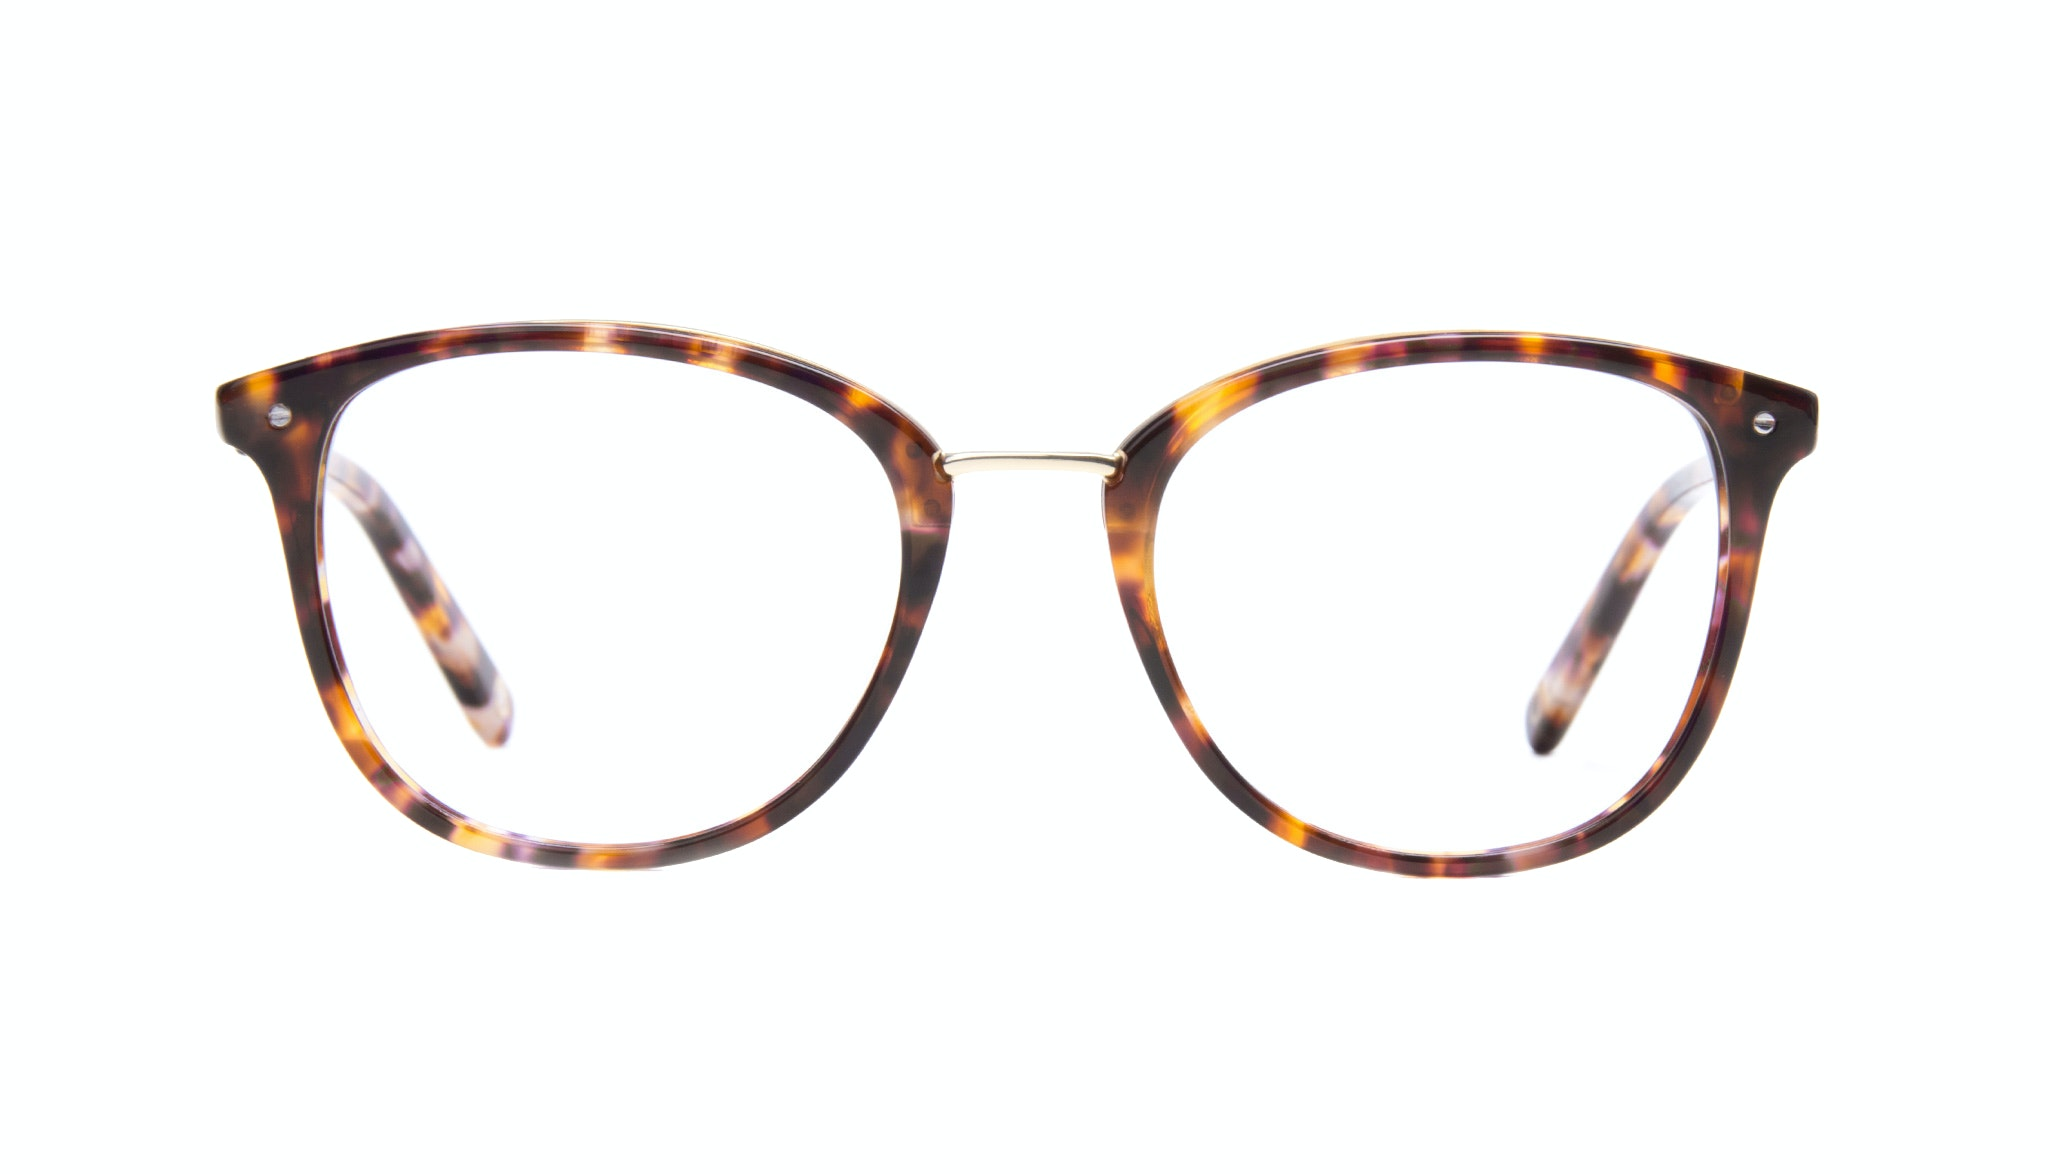 Affordable Fashion Glasses Square Round Eyeglasses Women Bella Dark Tortoise